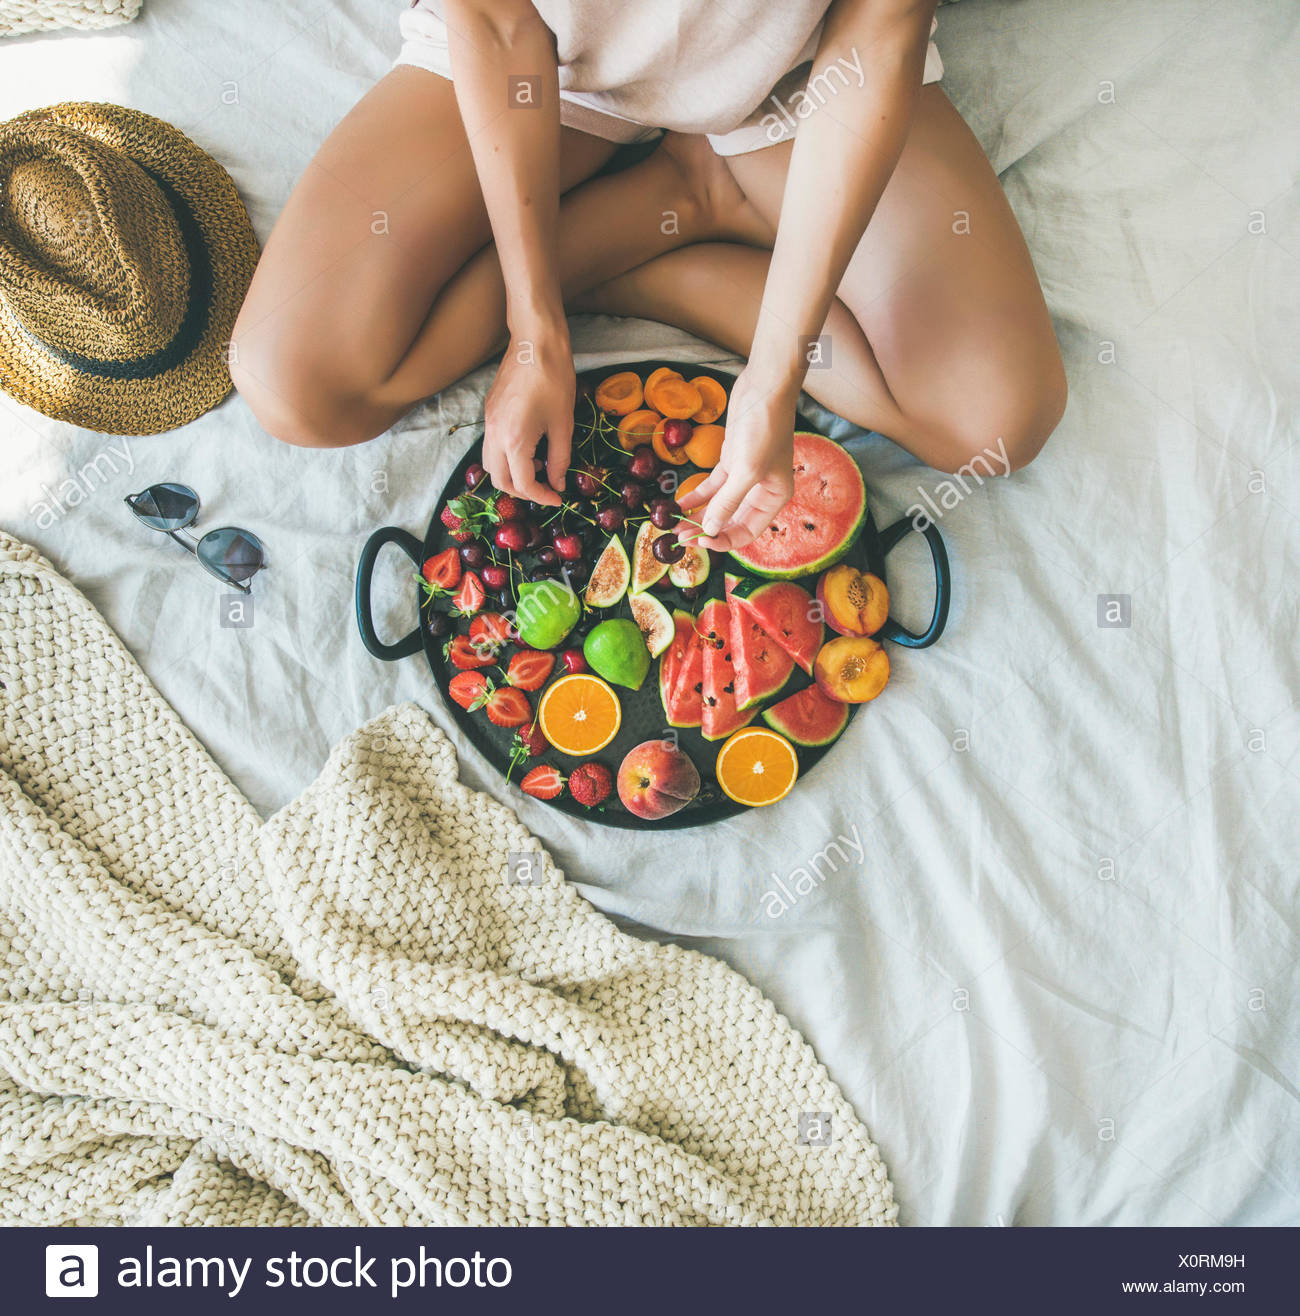 Summer healthy raw vegan clean eating breakfast in bed concept. Young girl wearing pastel colored home clothes taking cherries from tray full of fresh - Stock Image